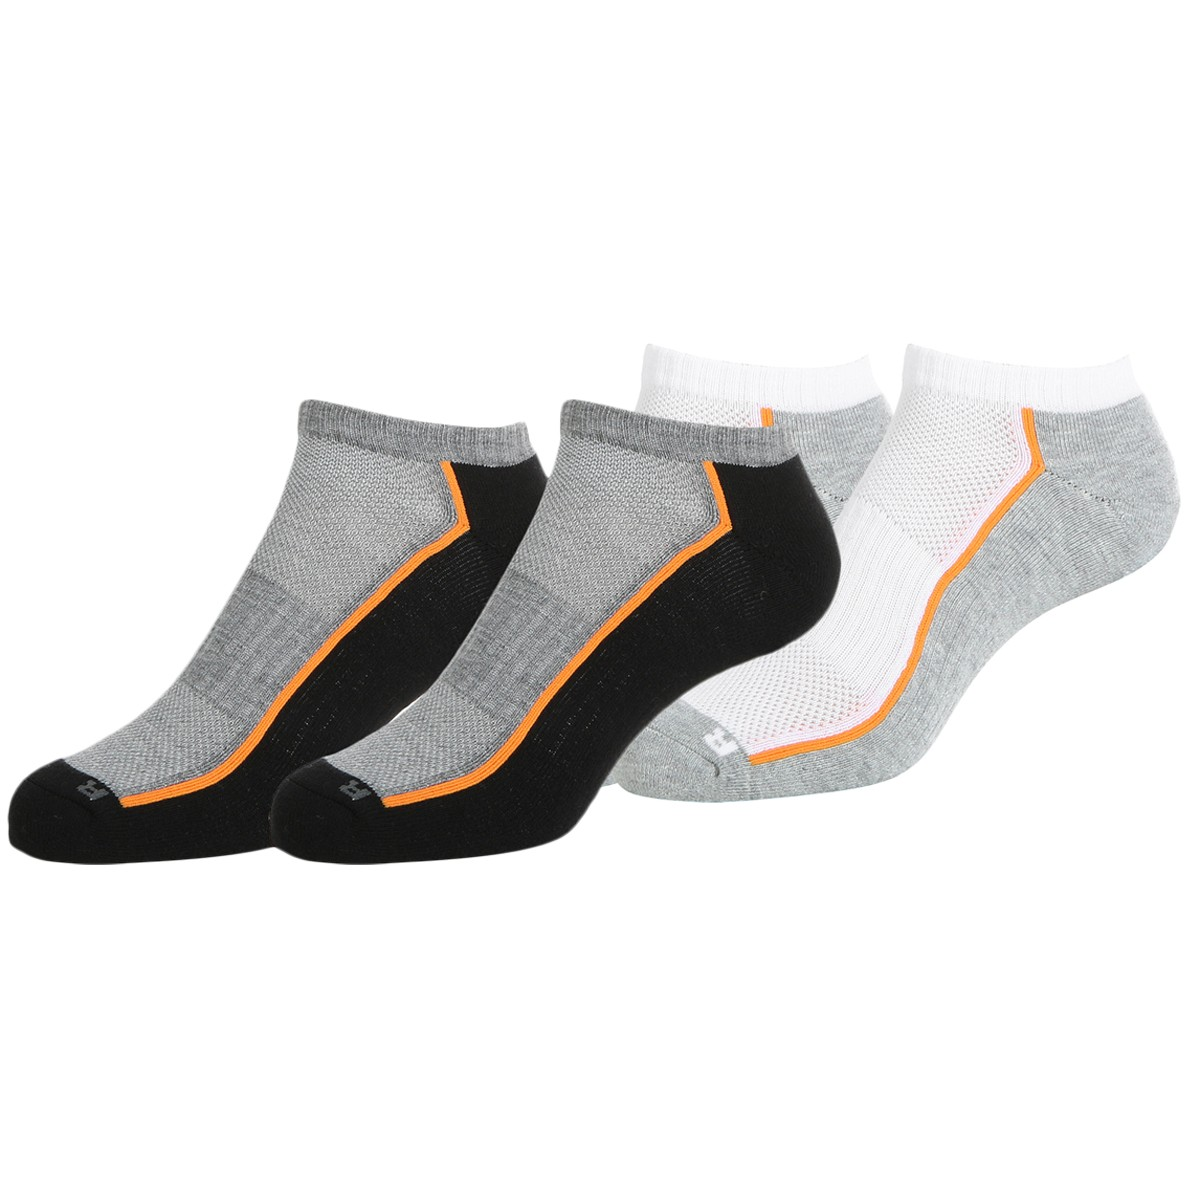 2 PAIRS OF HEAD PERFORMANCE LOW SOCKS